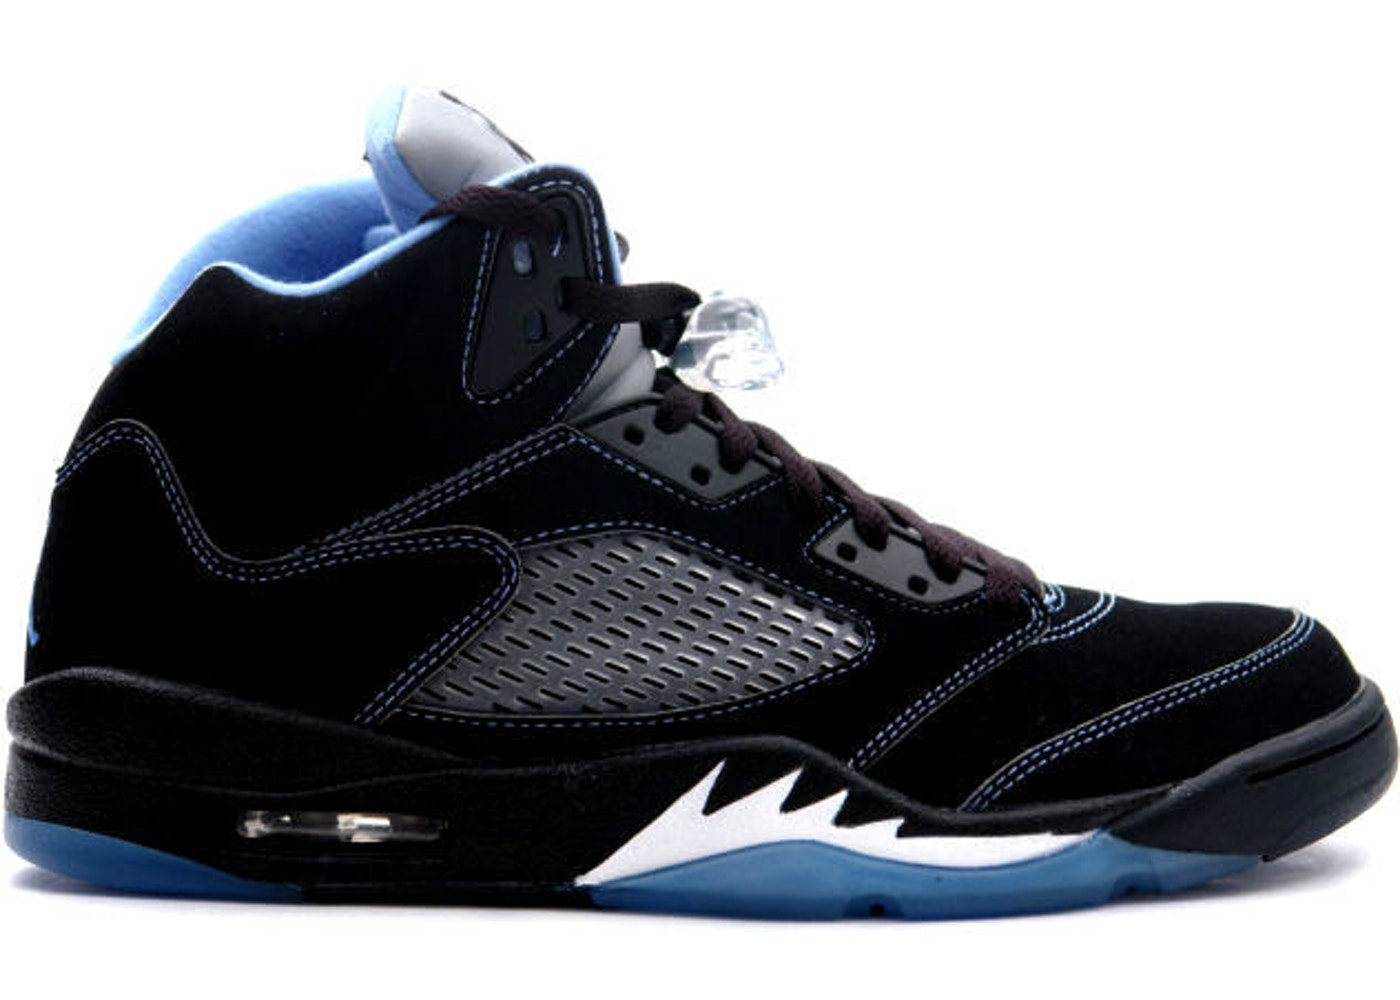 f0c8f6753a3 Jordan 5 Retro Black University Blue